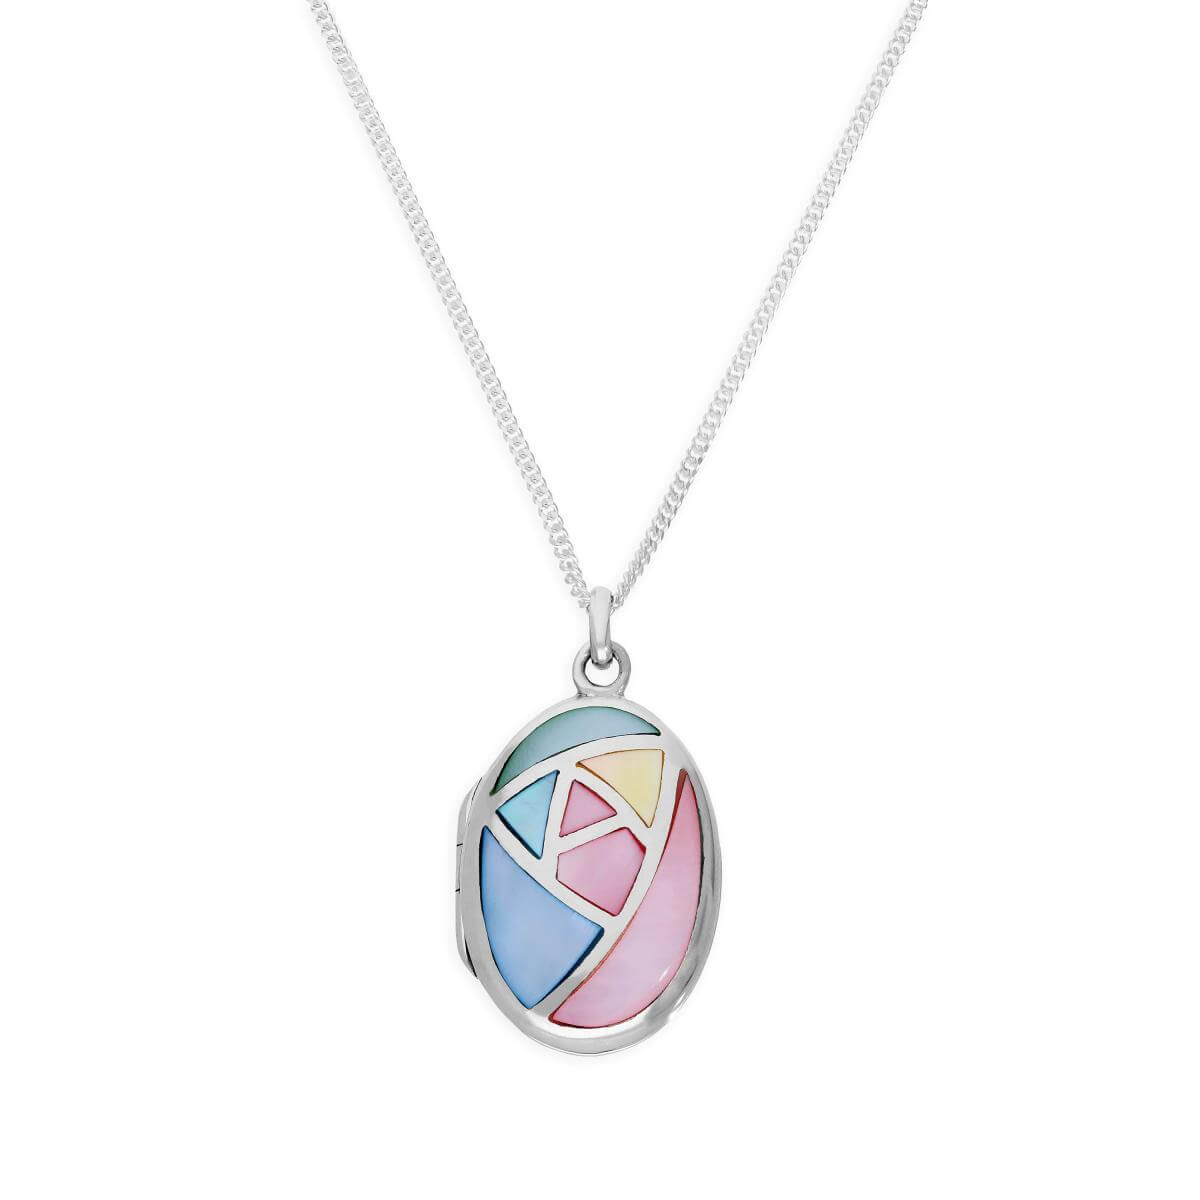 Sterling Silver & Pastel Coloured Mother of Pearl Oval Locket on Chain 16 - 24 Inches